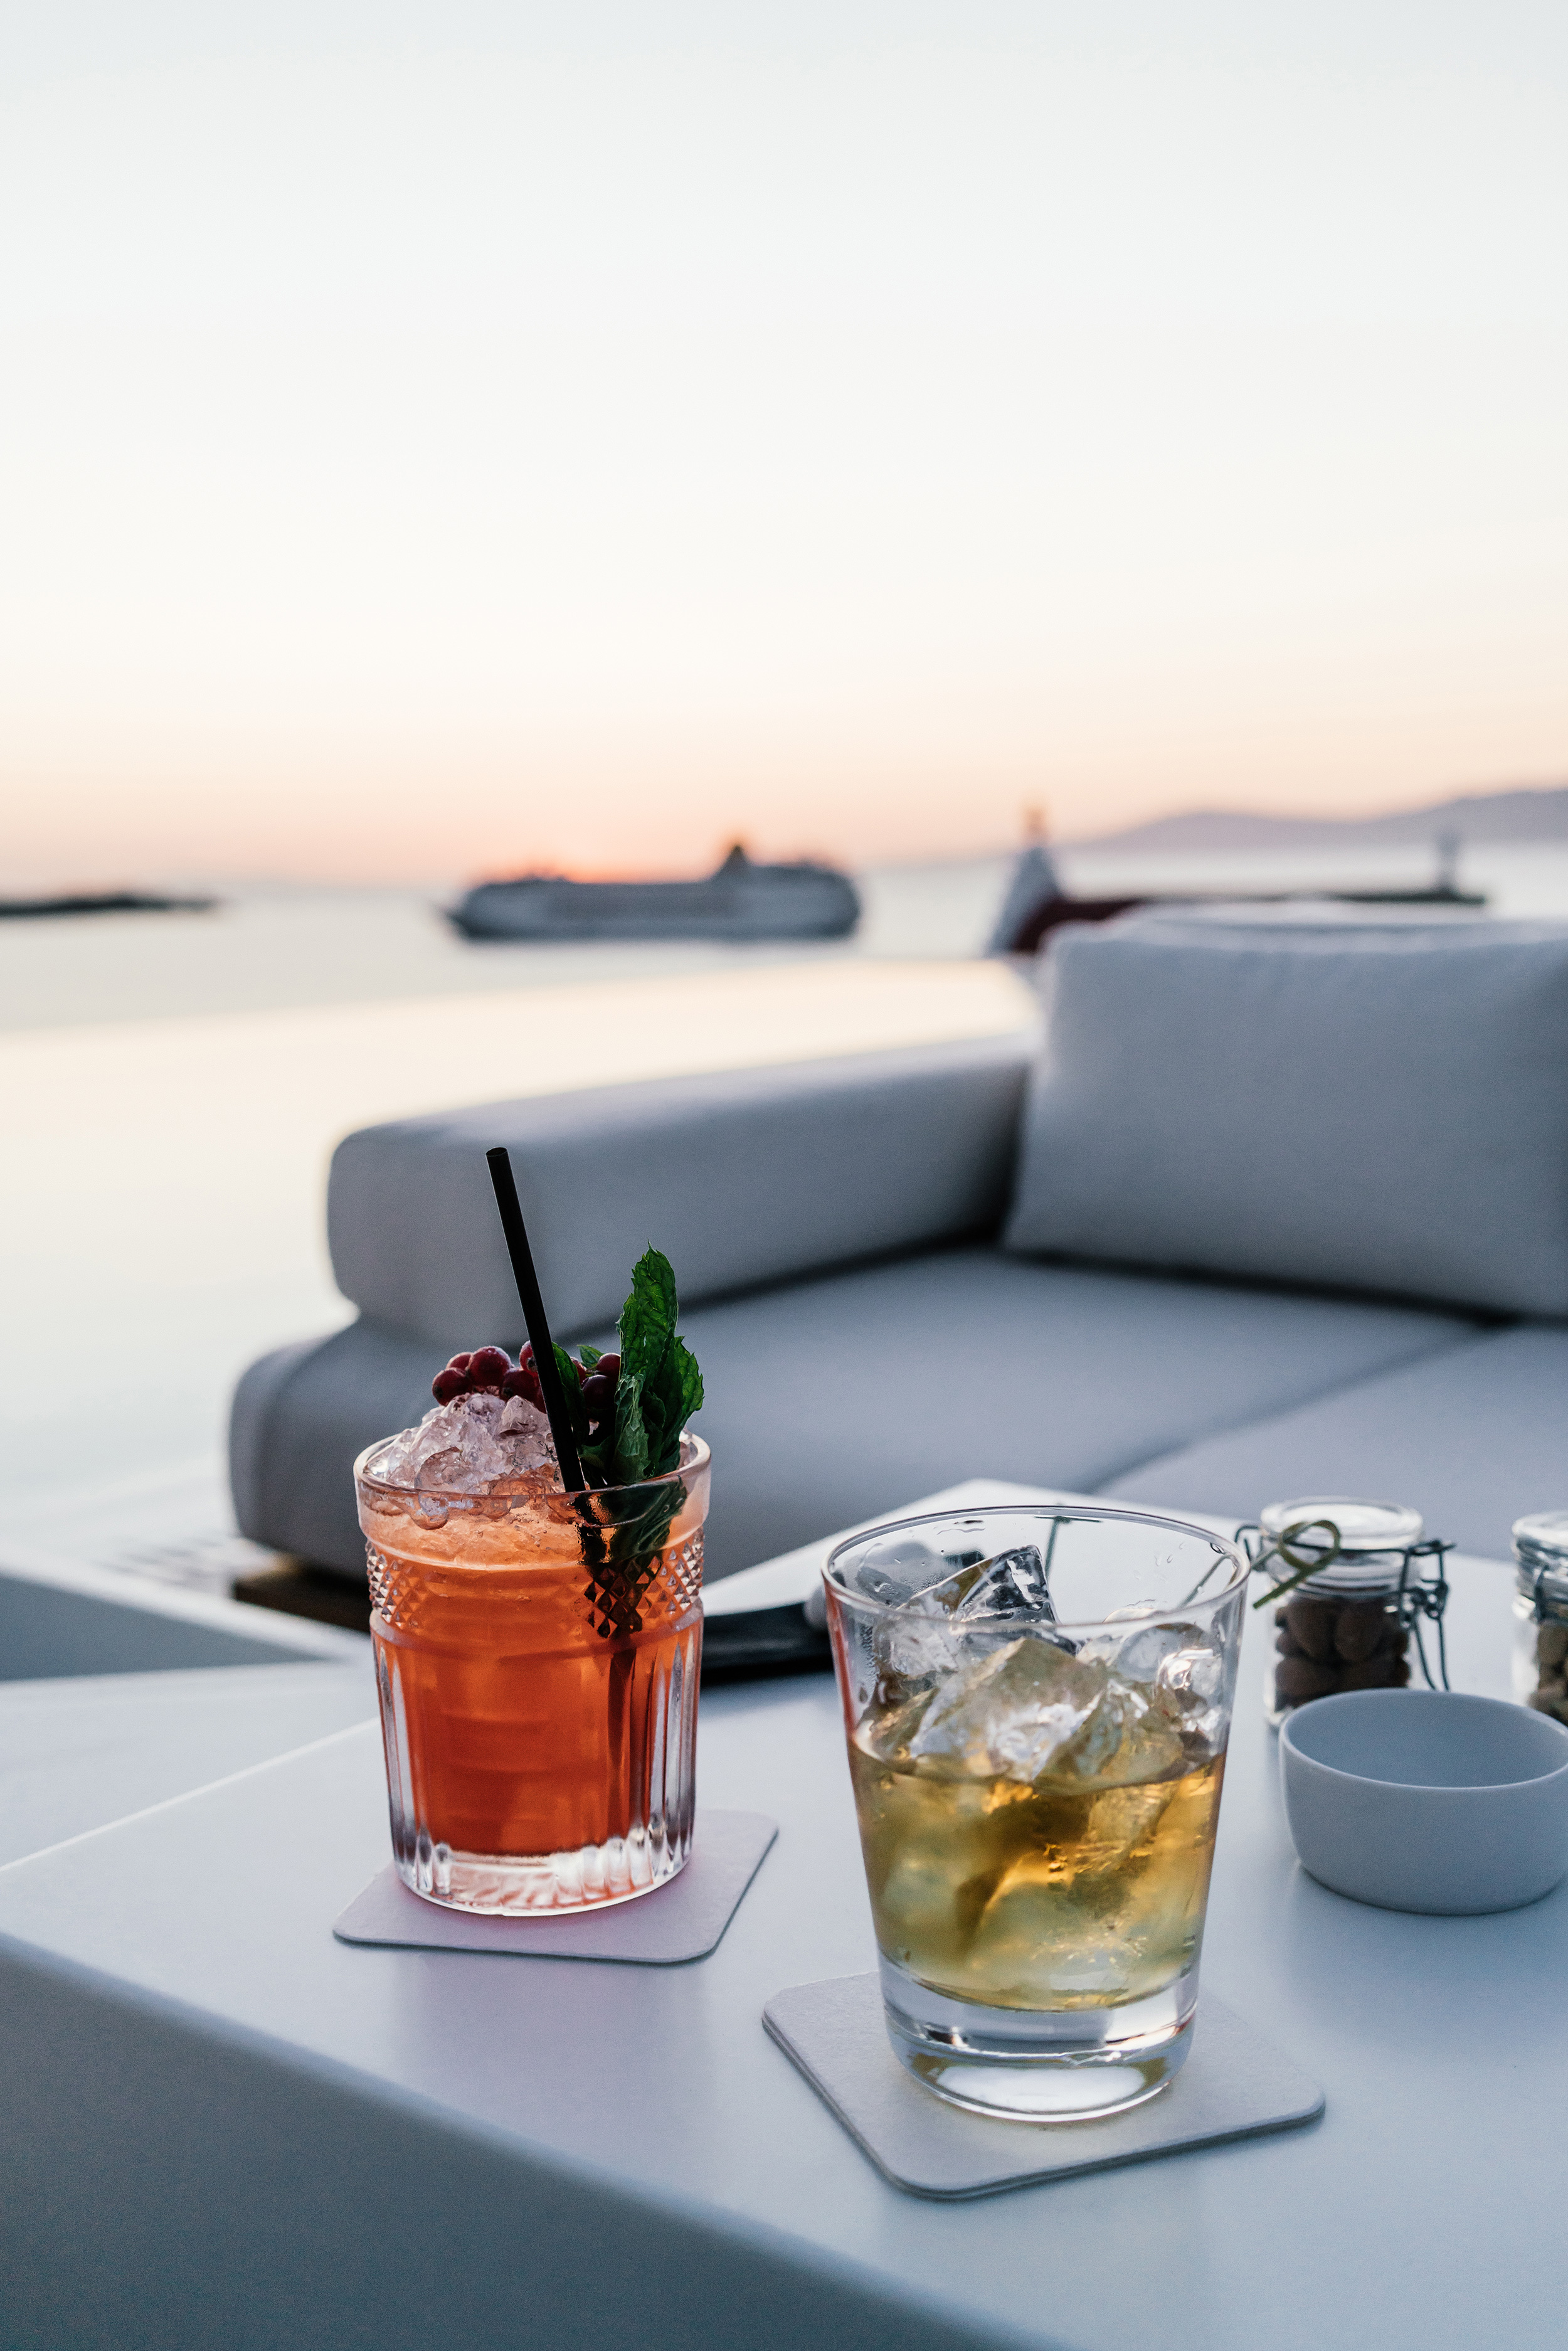 Bill & Coo Suites and Lounge  for a drink and to watch the sunset